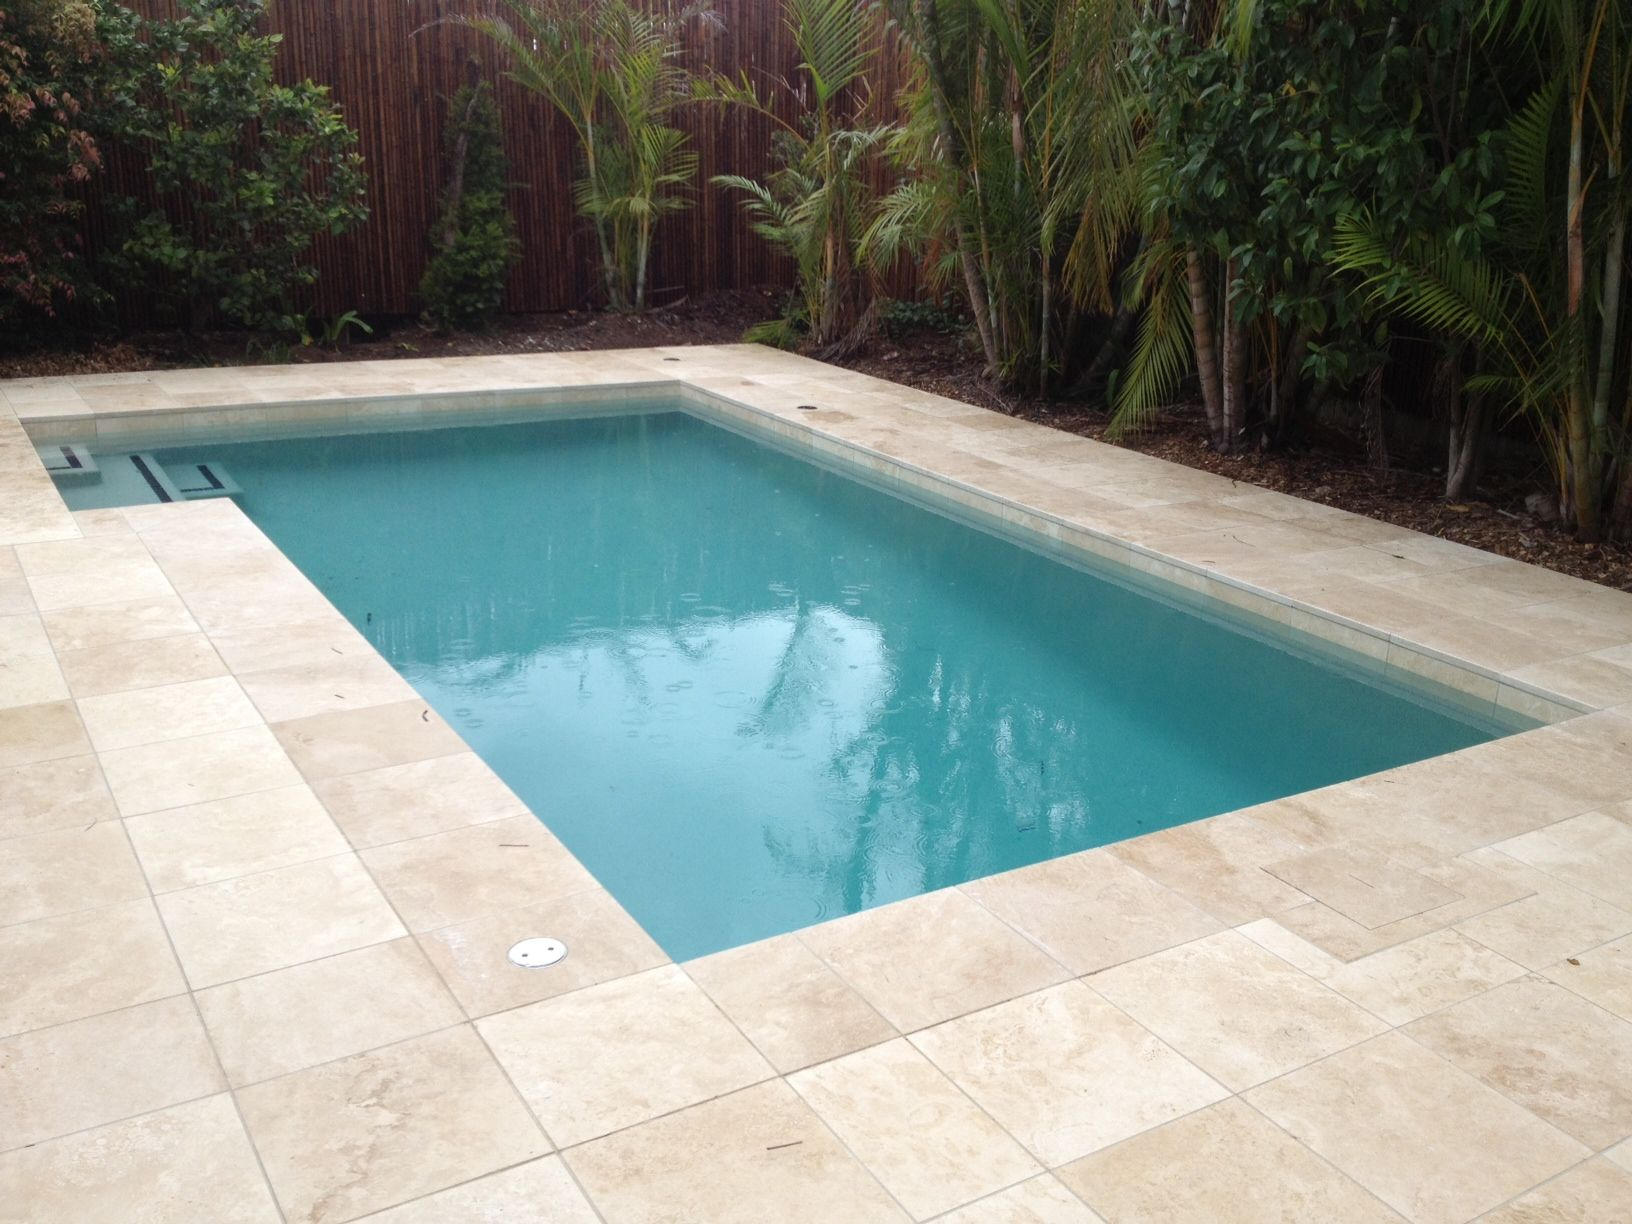 Lovely Pool Garden Ideas With Travertine Pool Floors Tiled Also Cool Rectangular Pool As Modern Backyard Des Travertine Pool Pool Pavers Travertine Pool Coping